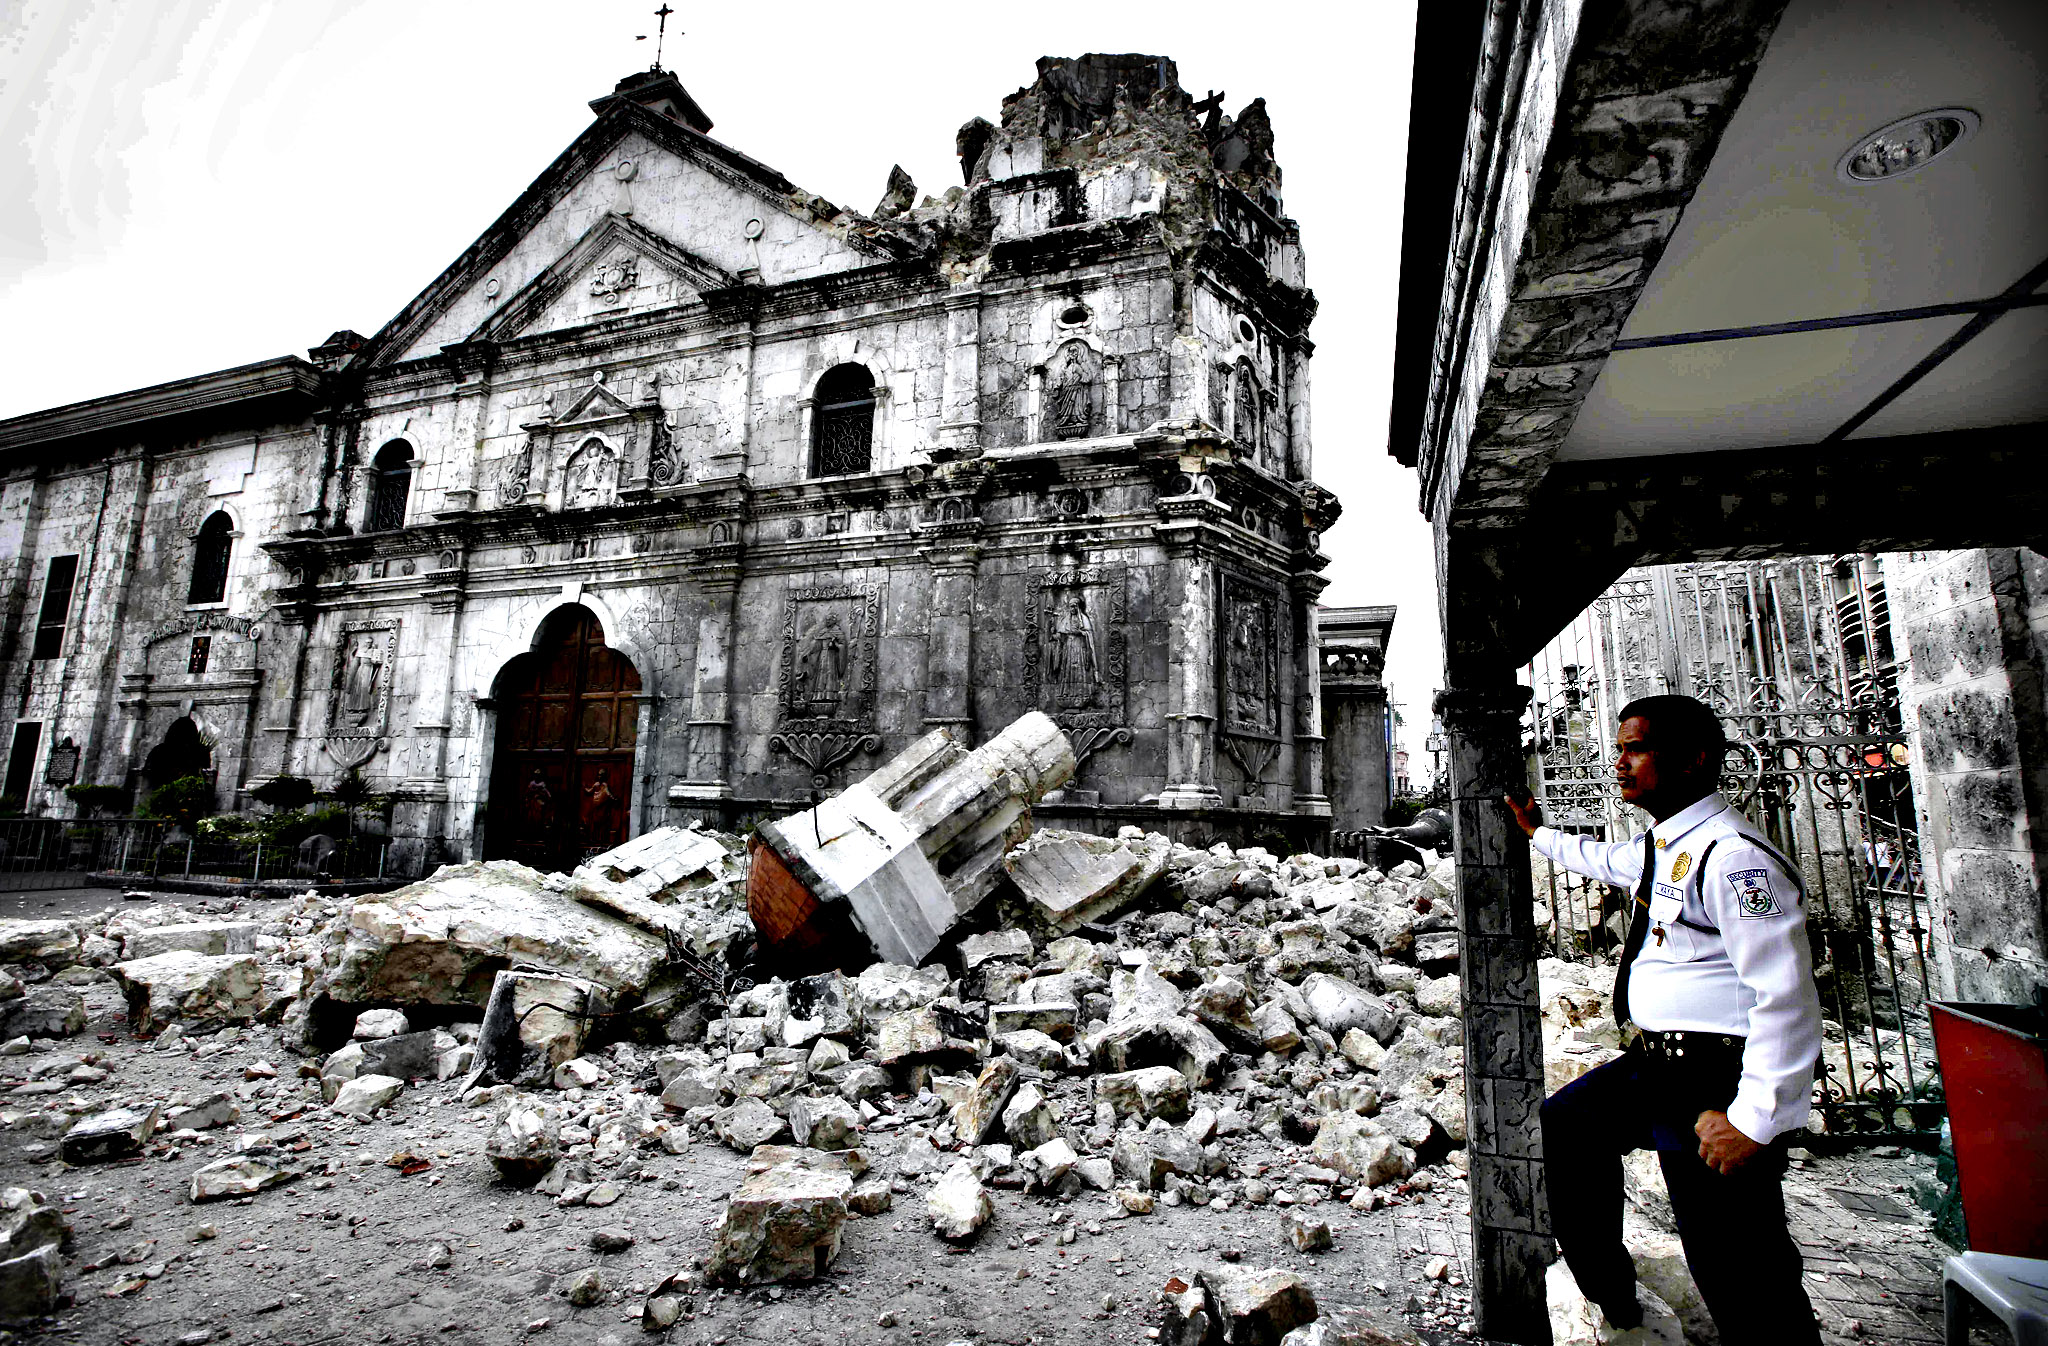 A private guard stands near the damaged Basilica of the Holy Child following a 7.2-magnitude earthquake that hit Cebu city in central Philippines and toppled the bell tower of the Philippines' oldest church Tuesday, Oct. 15, 2013. The tremor collapsed buildings, cracked roads and toppled the bell tower of the Philippines' oldest church Tuesday morning, causing multiple deaths across the central region and sending terrified residents into deadly stampedes.